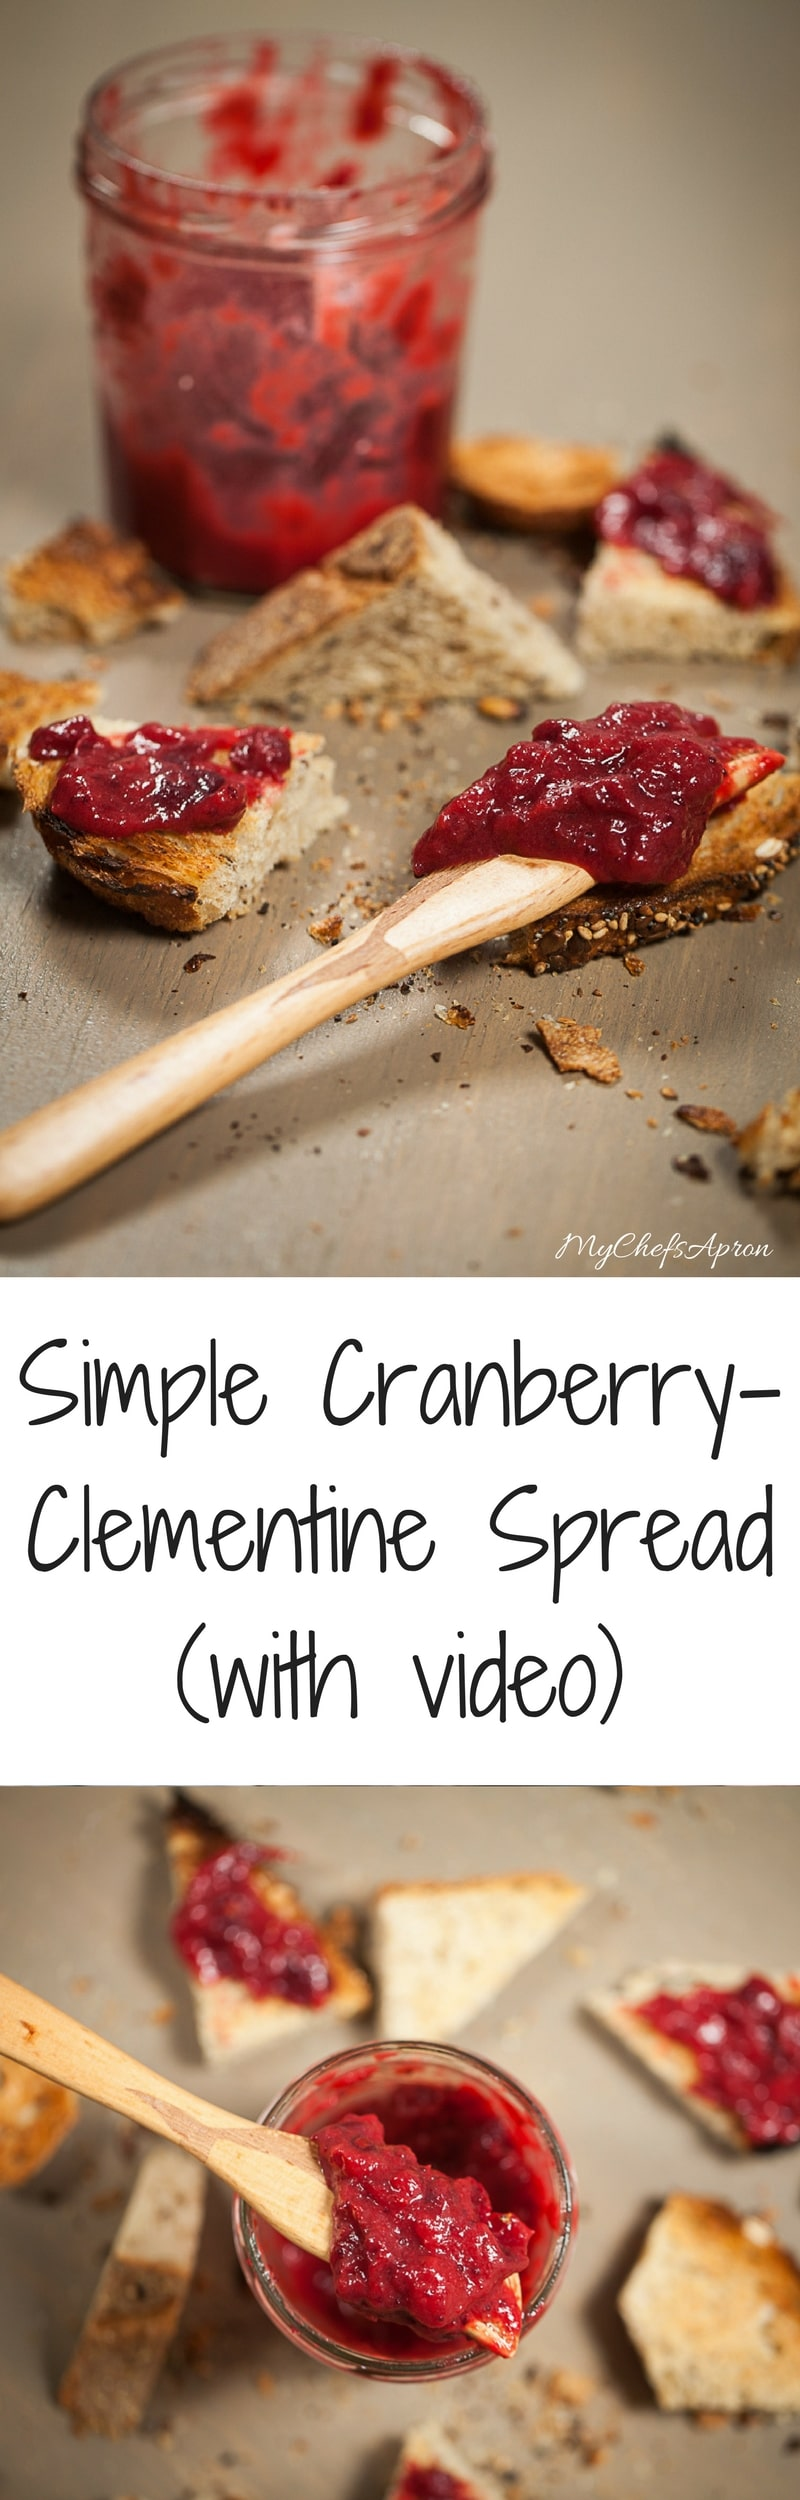 Simple Cranberry Clementine Spread